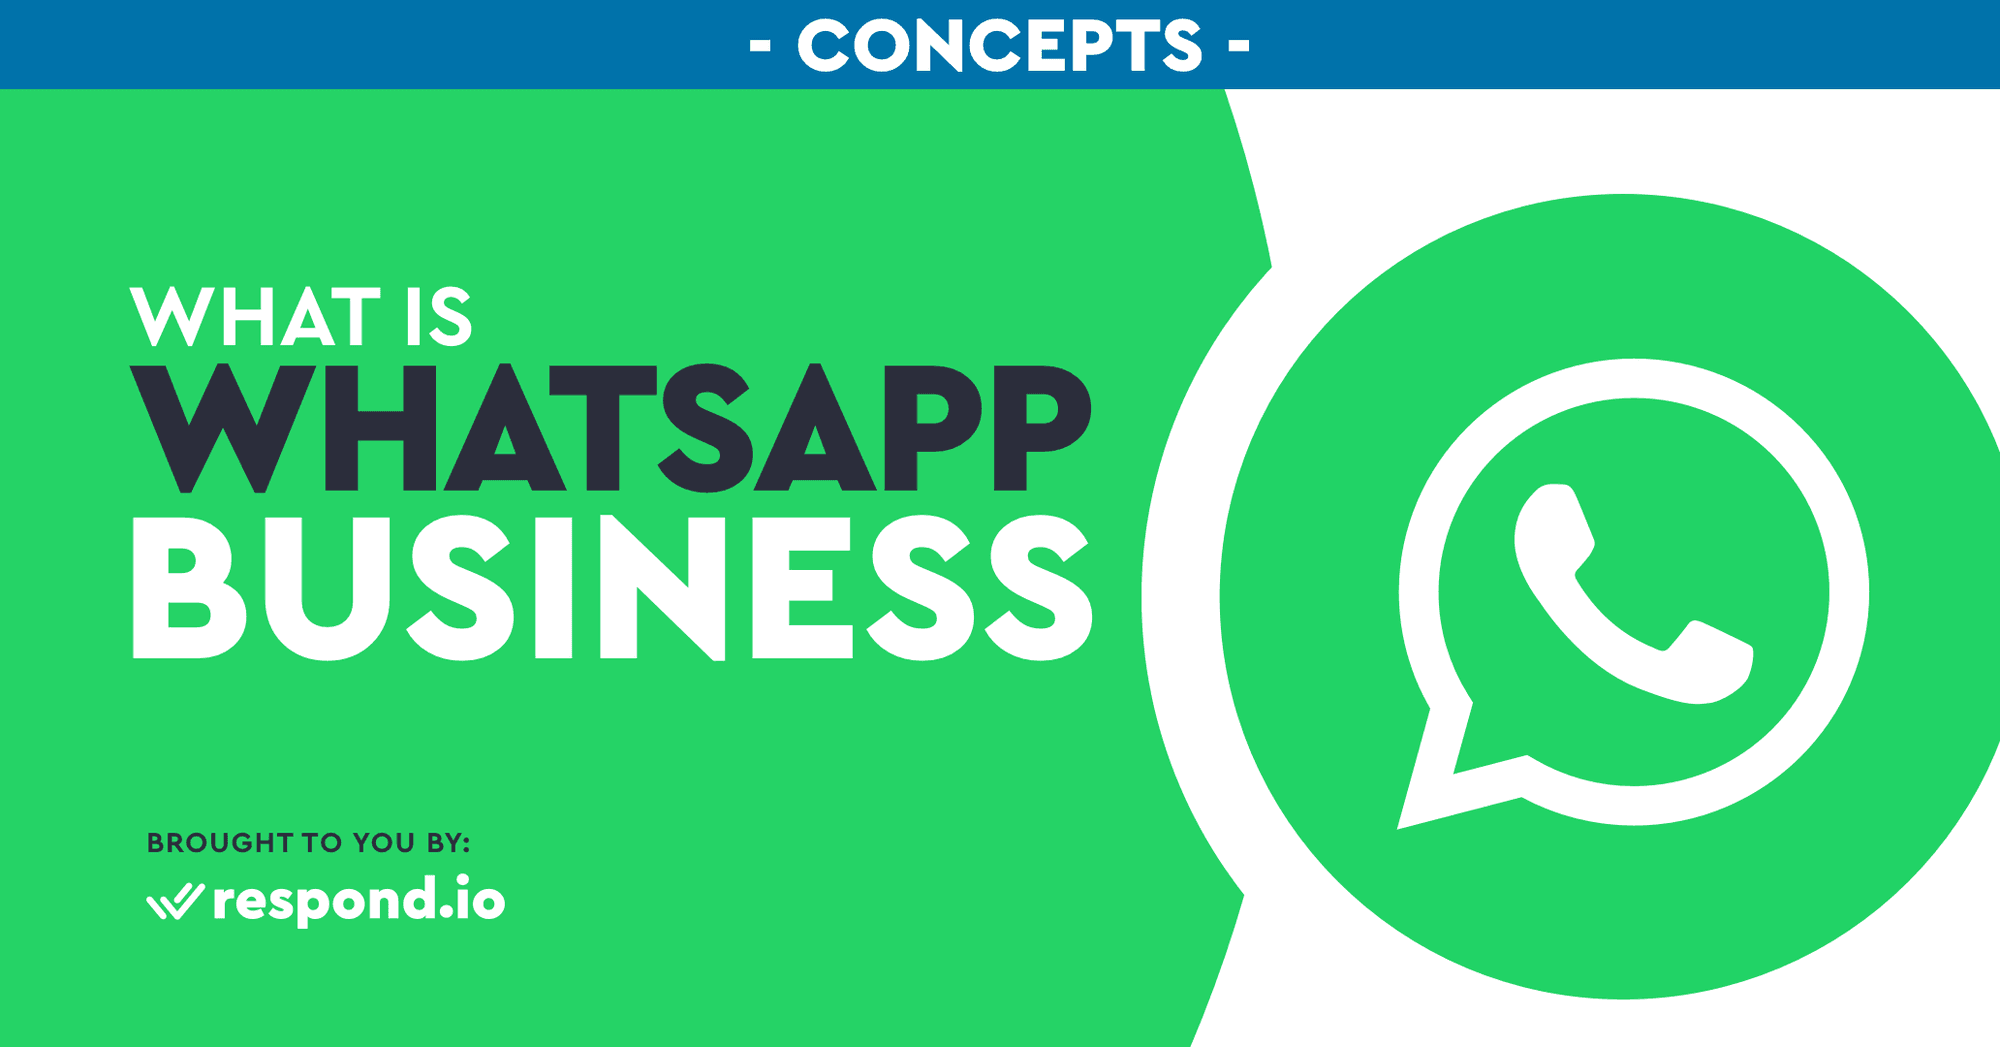 WhatsApp Business: Accounts & Features Overview (March 2021)